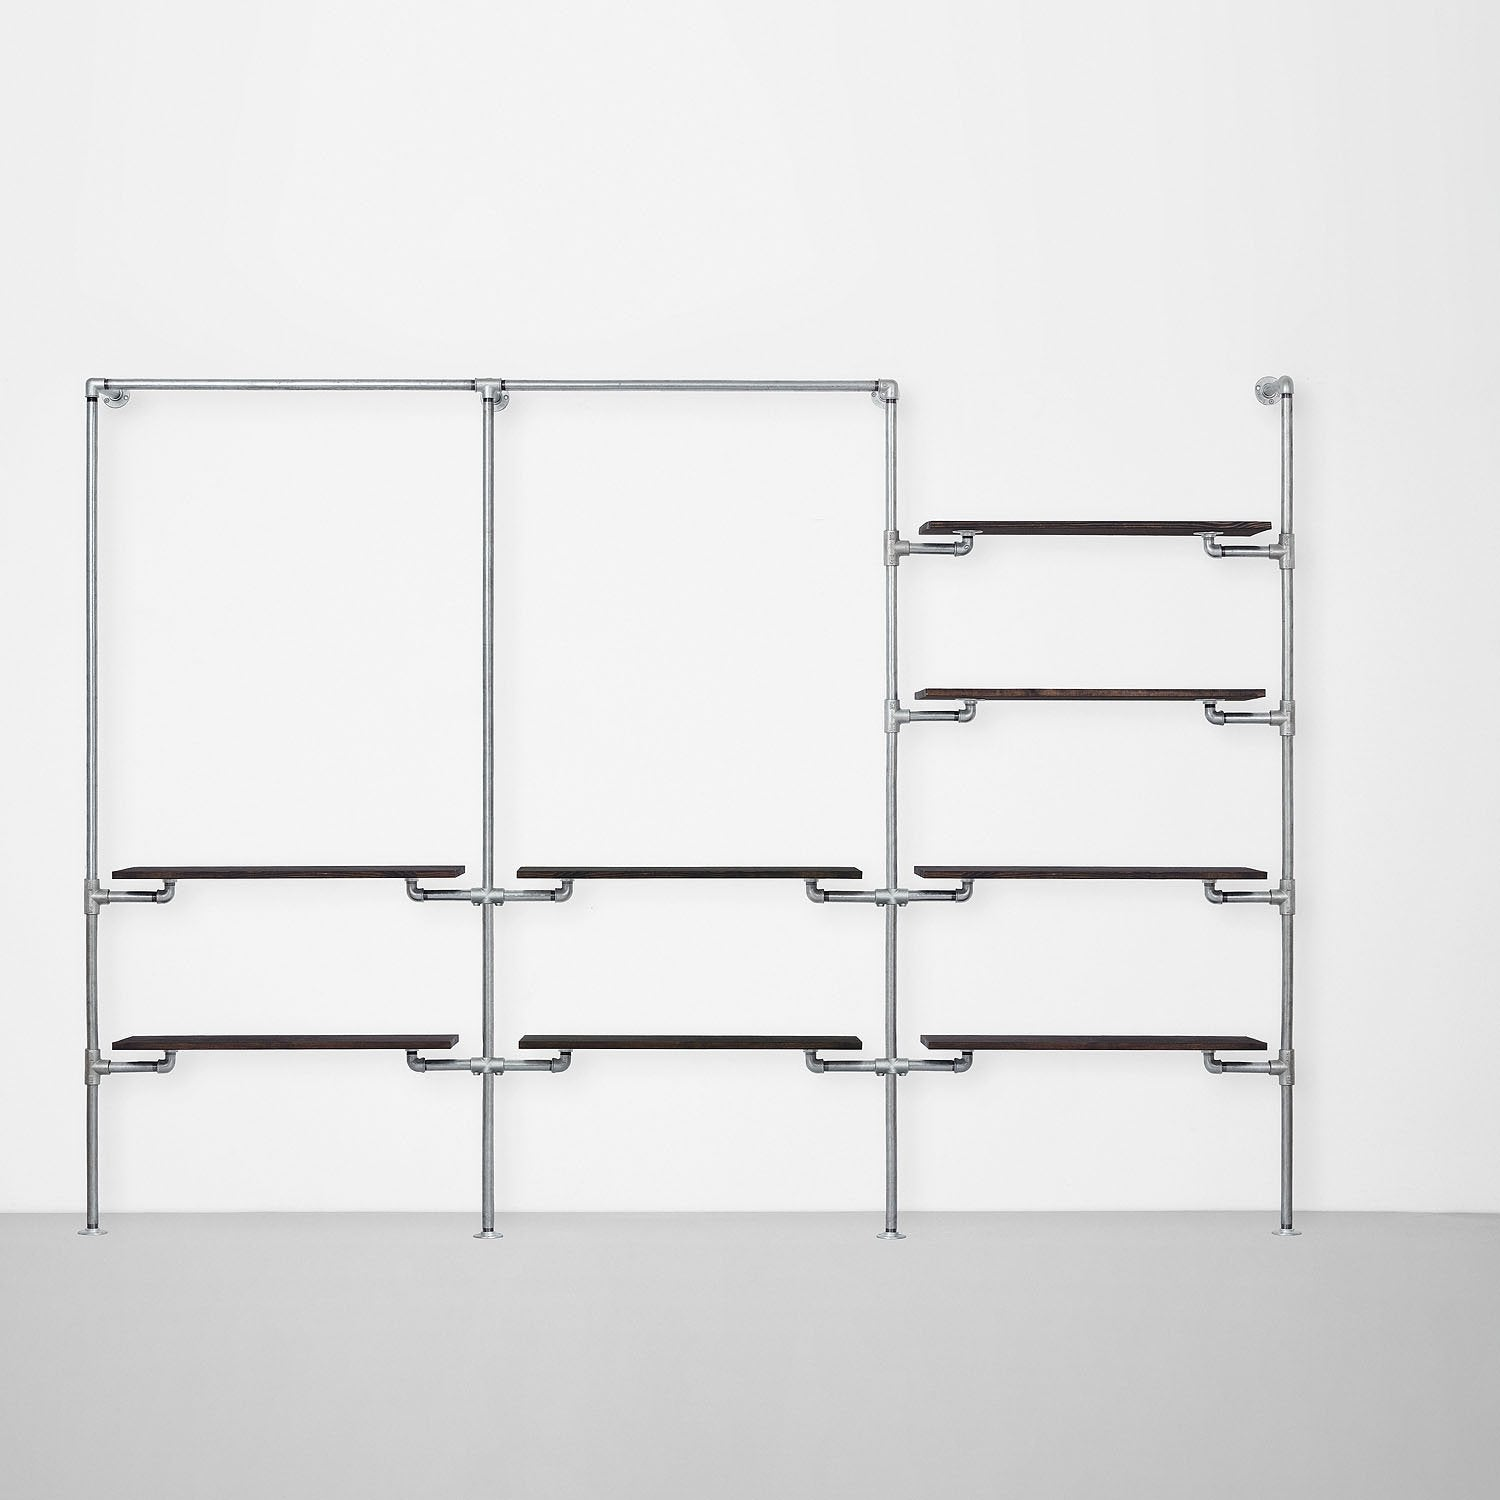 The Walk-In 3 row wardrobe system - (1 rail + 2 shelves / 1 rail + 2 shelves  / 4 shelves)